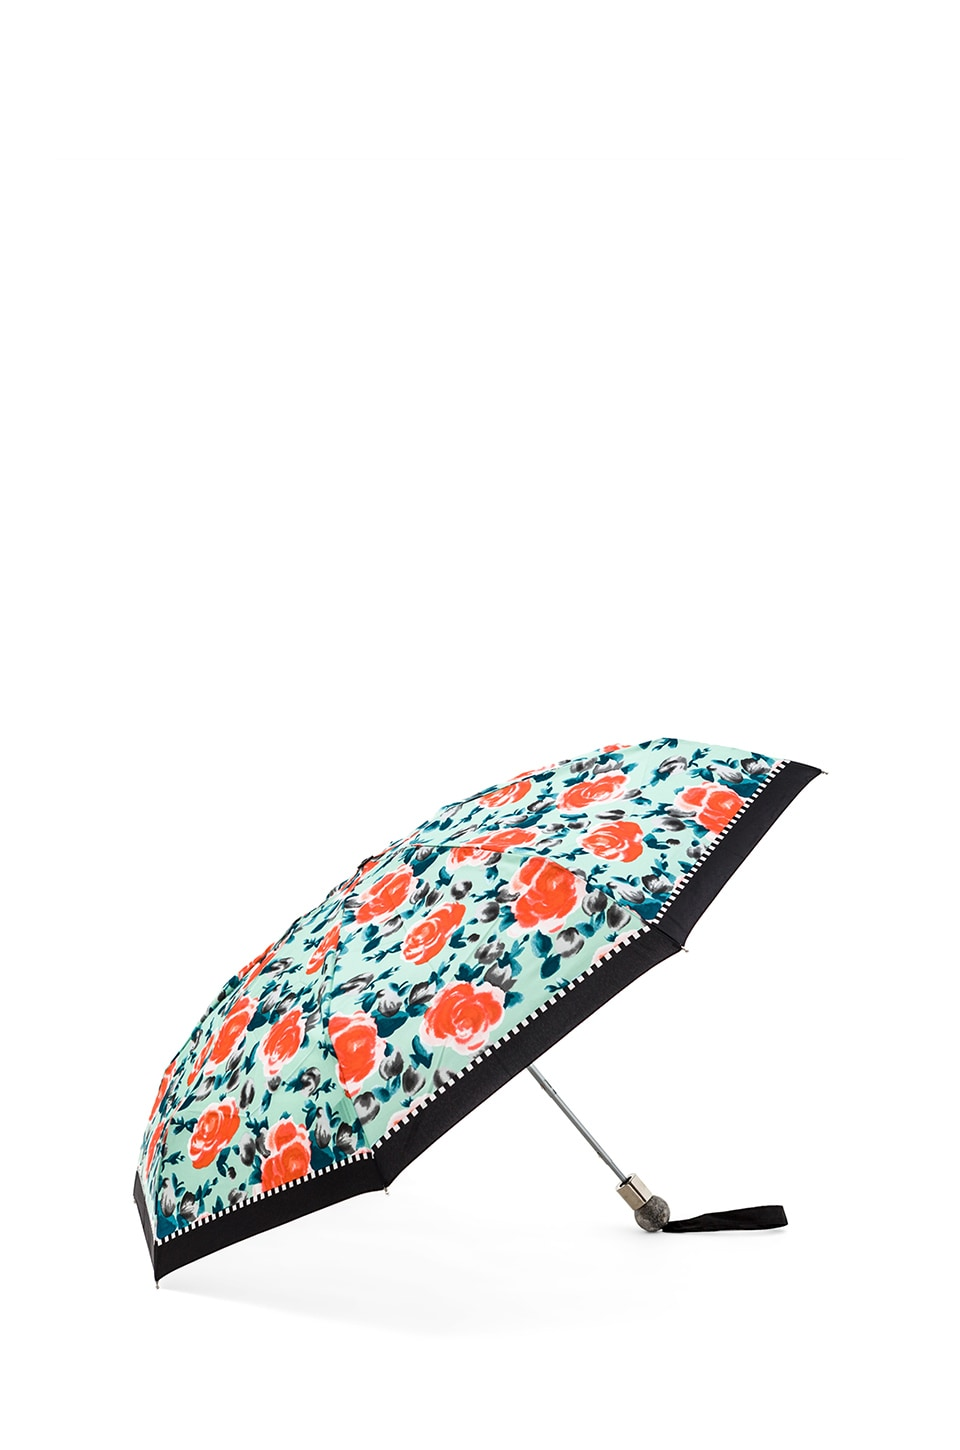 Marc by Marc Jacobs Jerrie Rose Umbrella in Pale Jade Multi